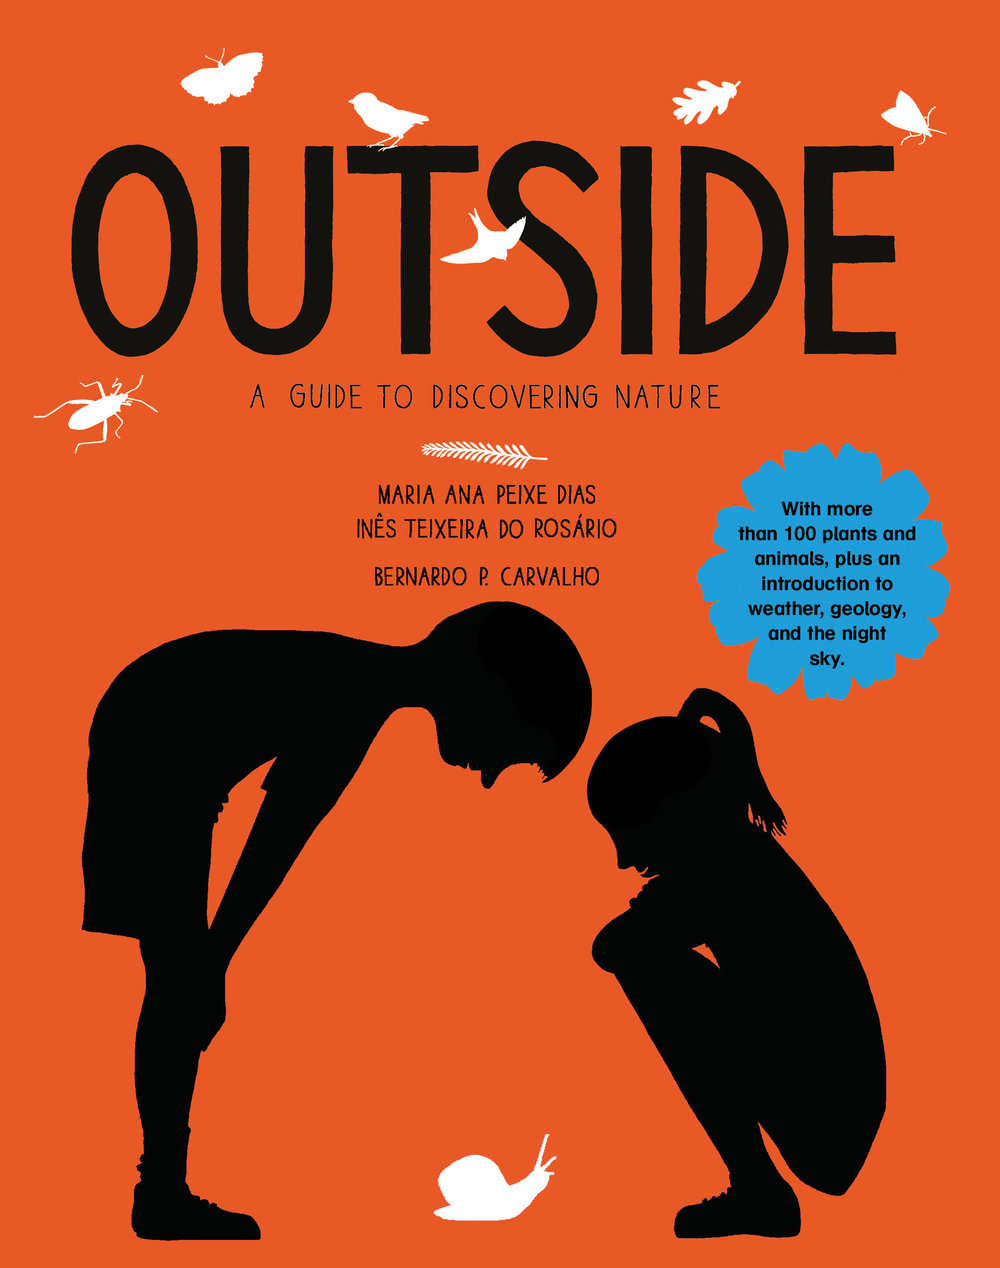 Outside-cover.jpg